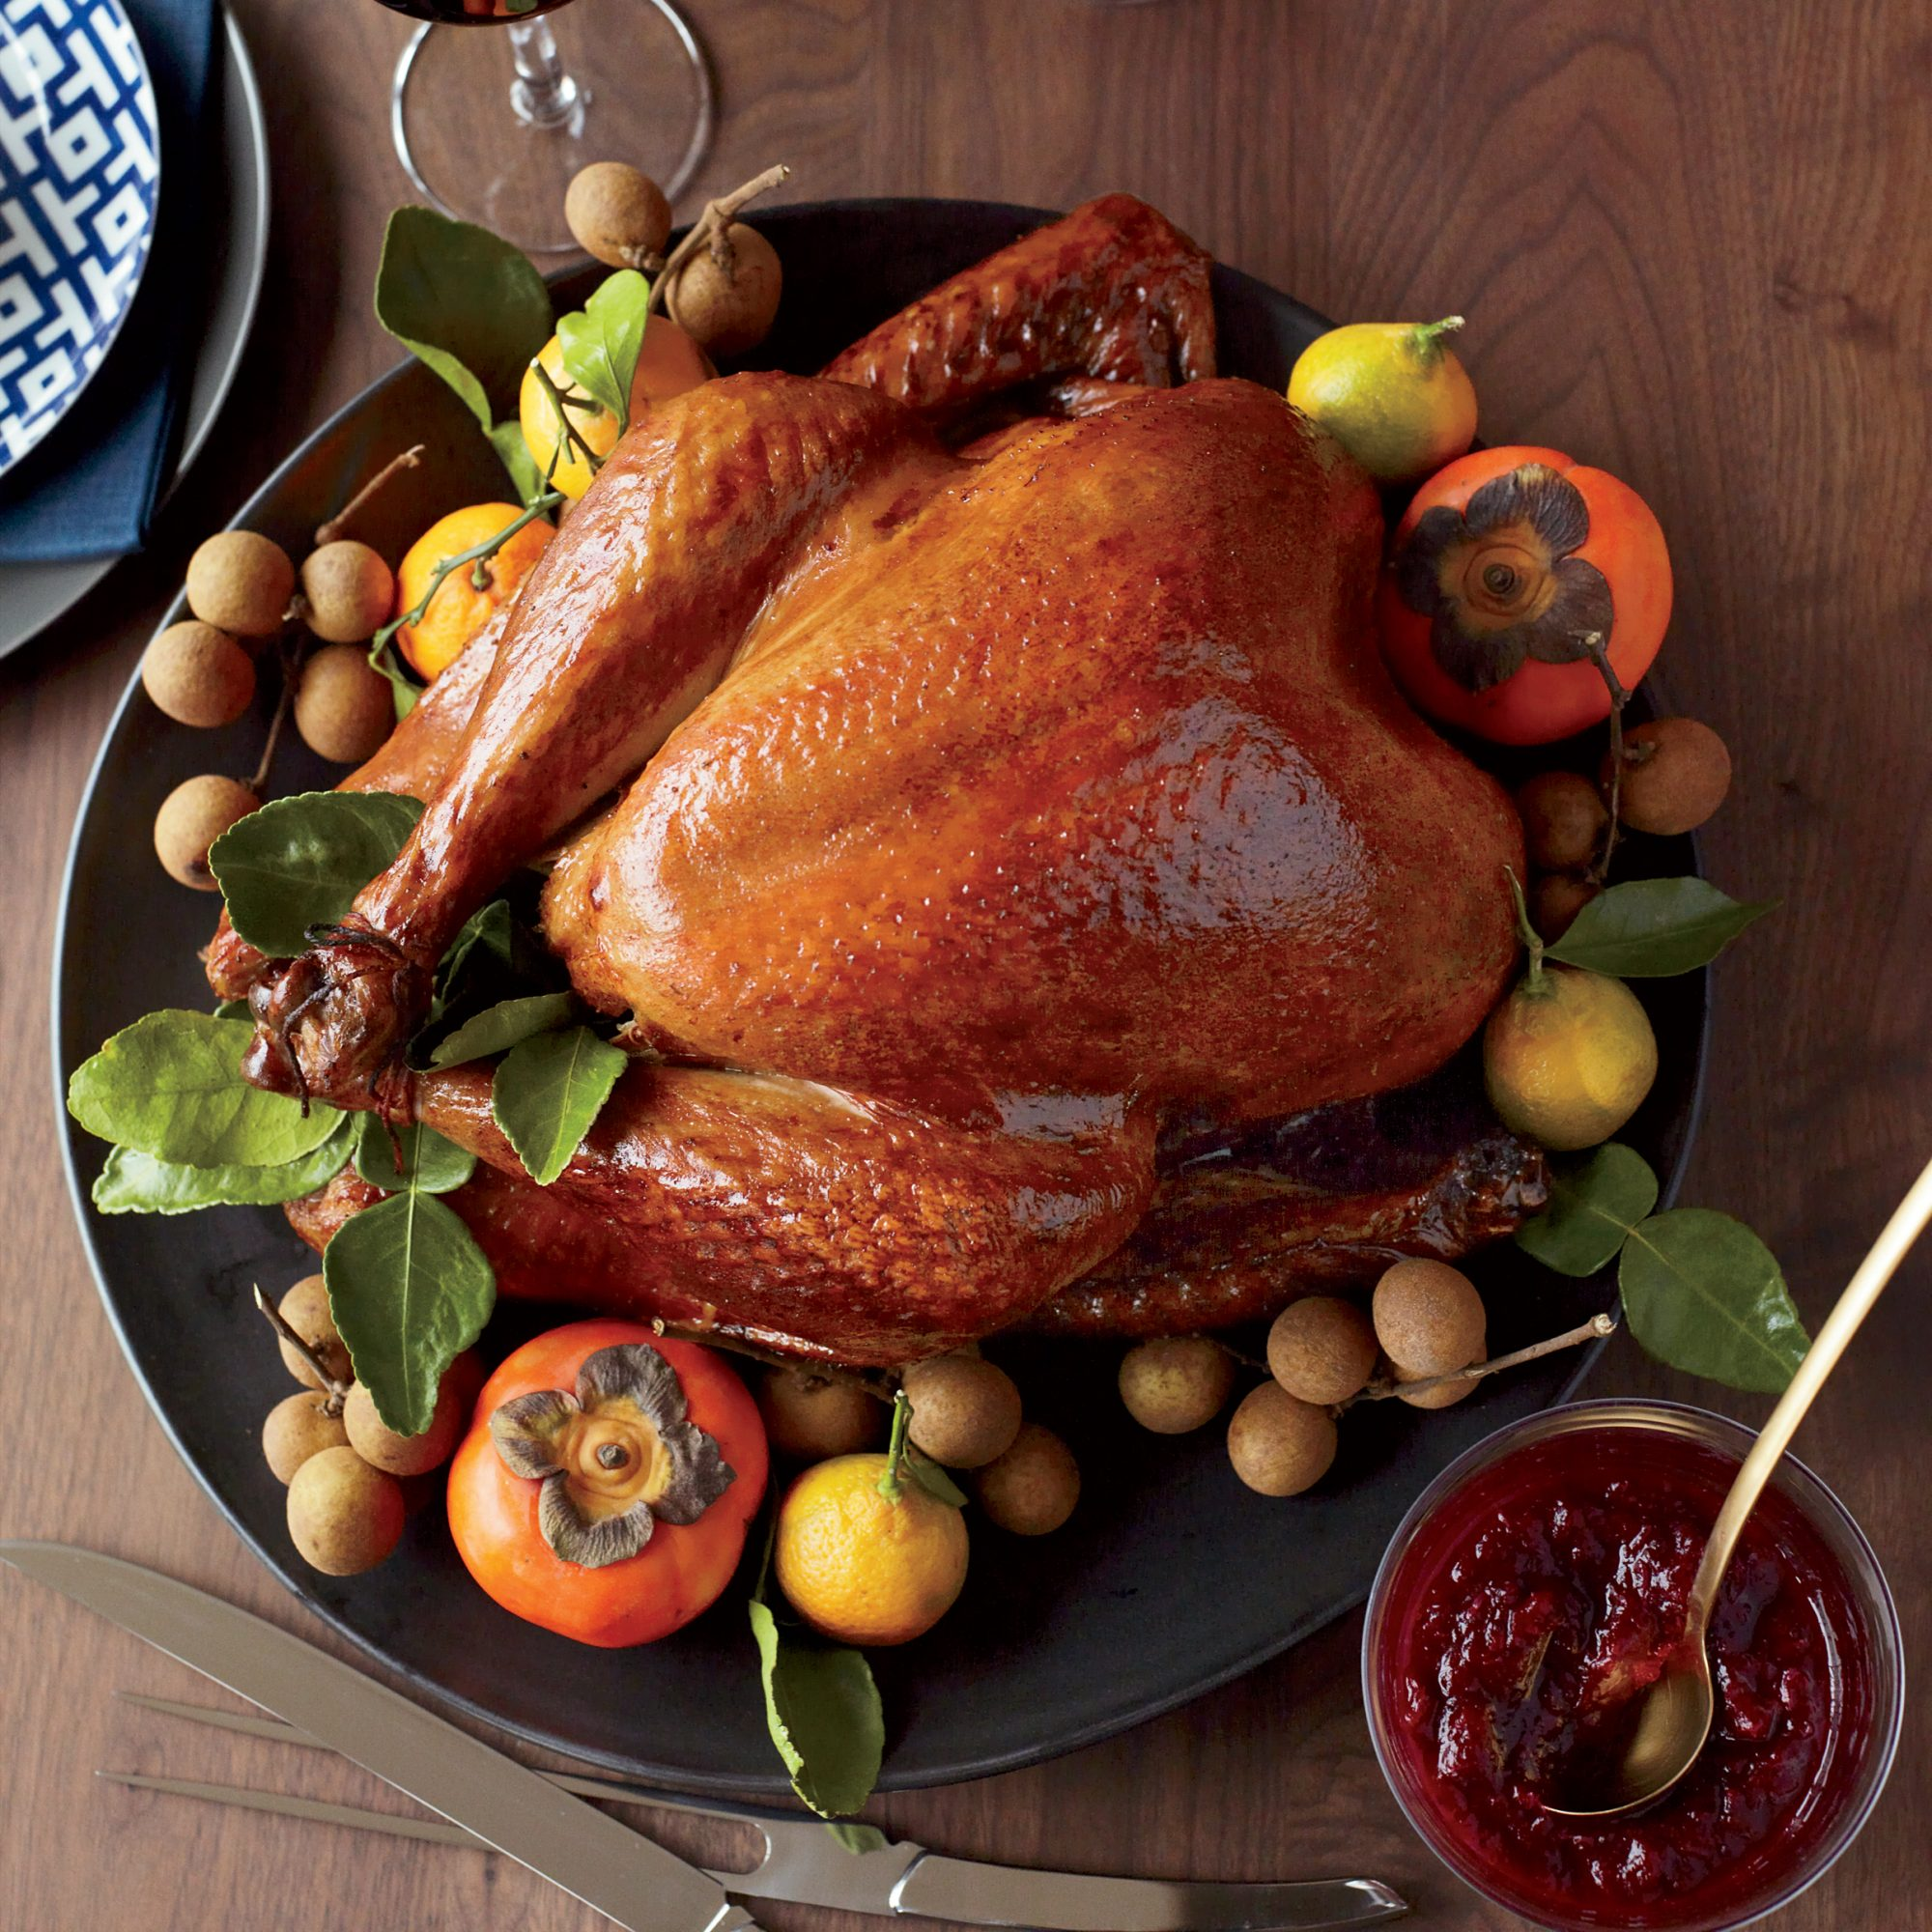 Soy Sauce And Honey Glazed Turkey Recipe Joanne Chang Food Wine